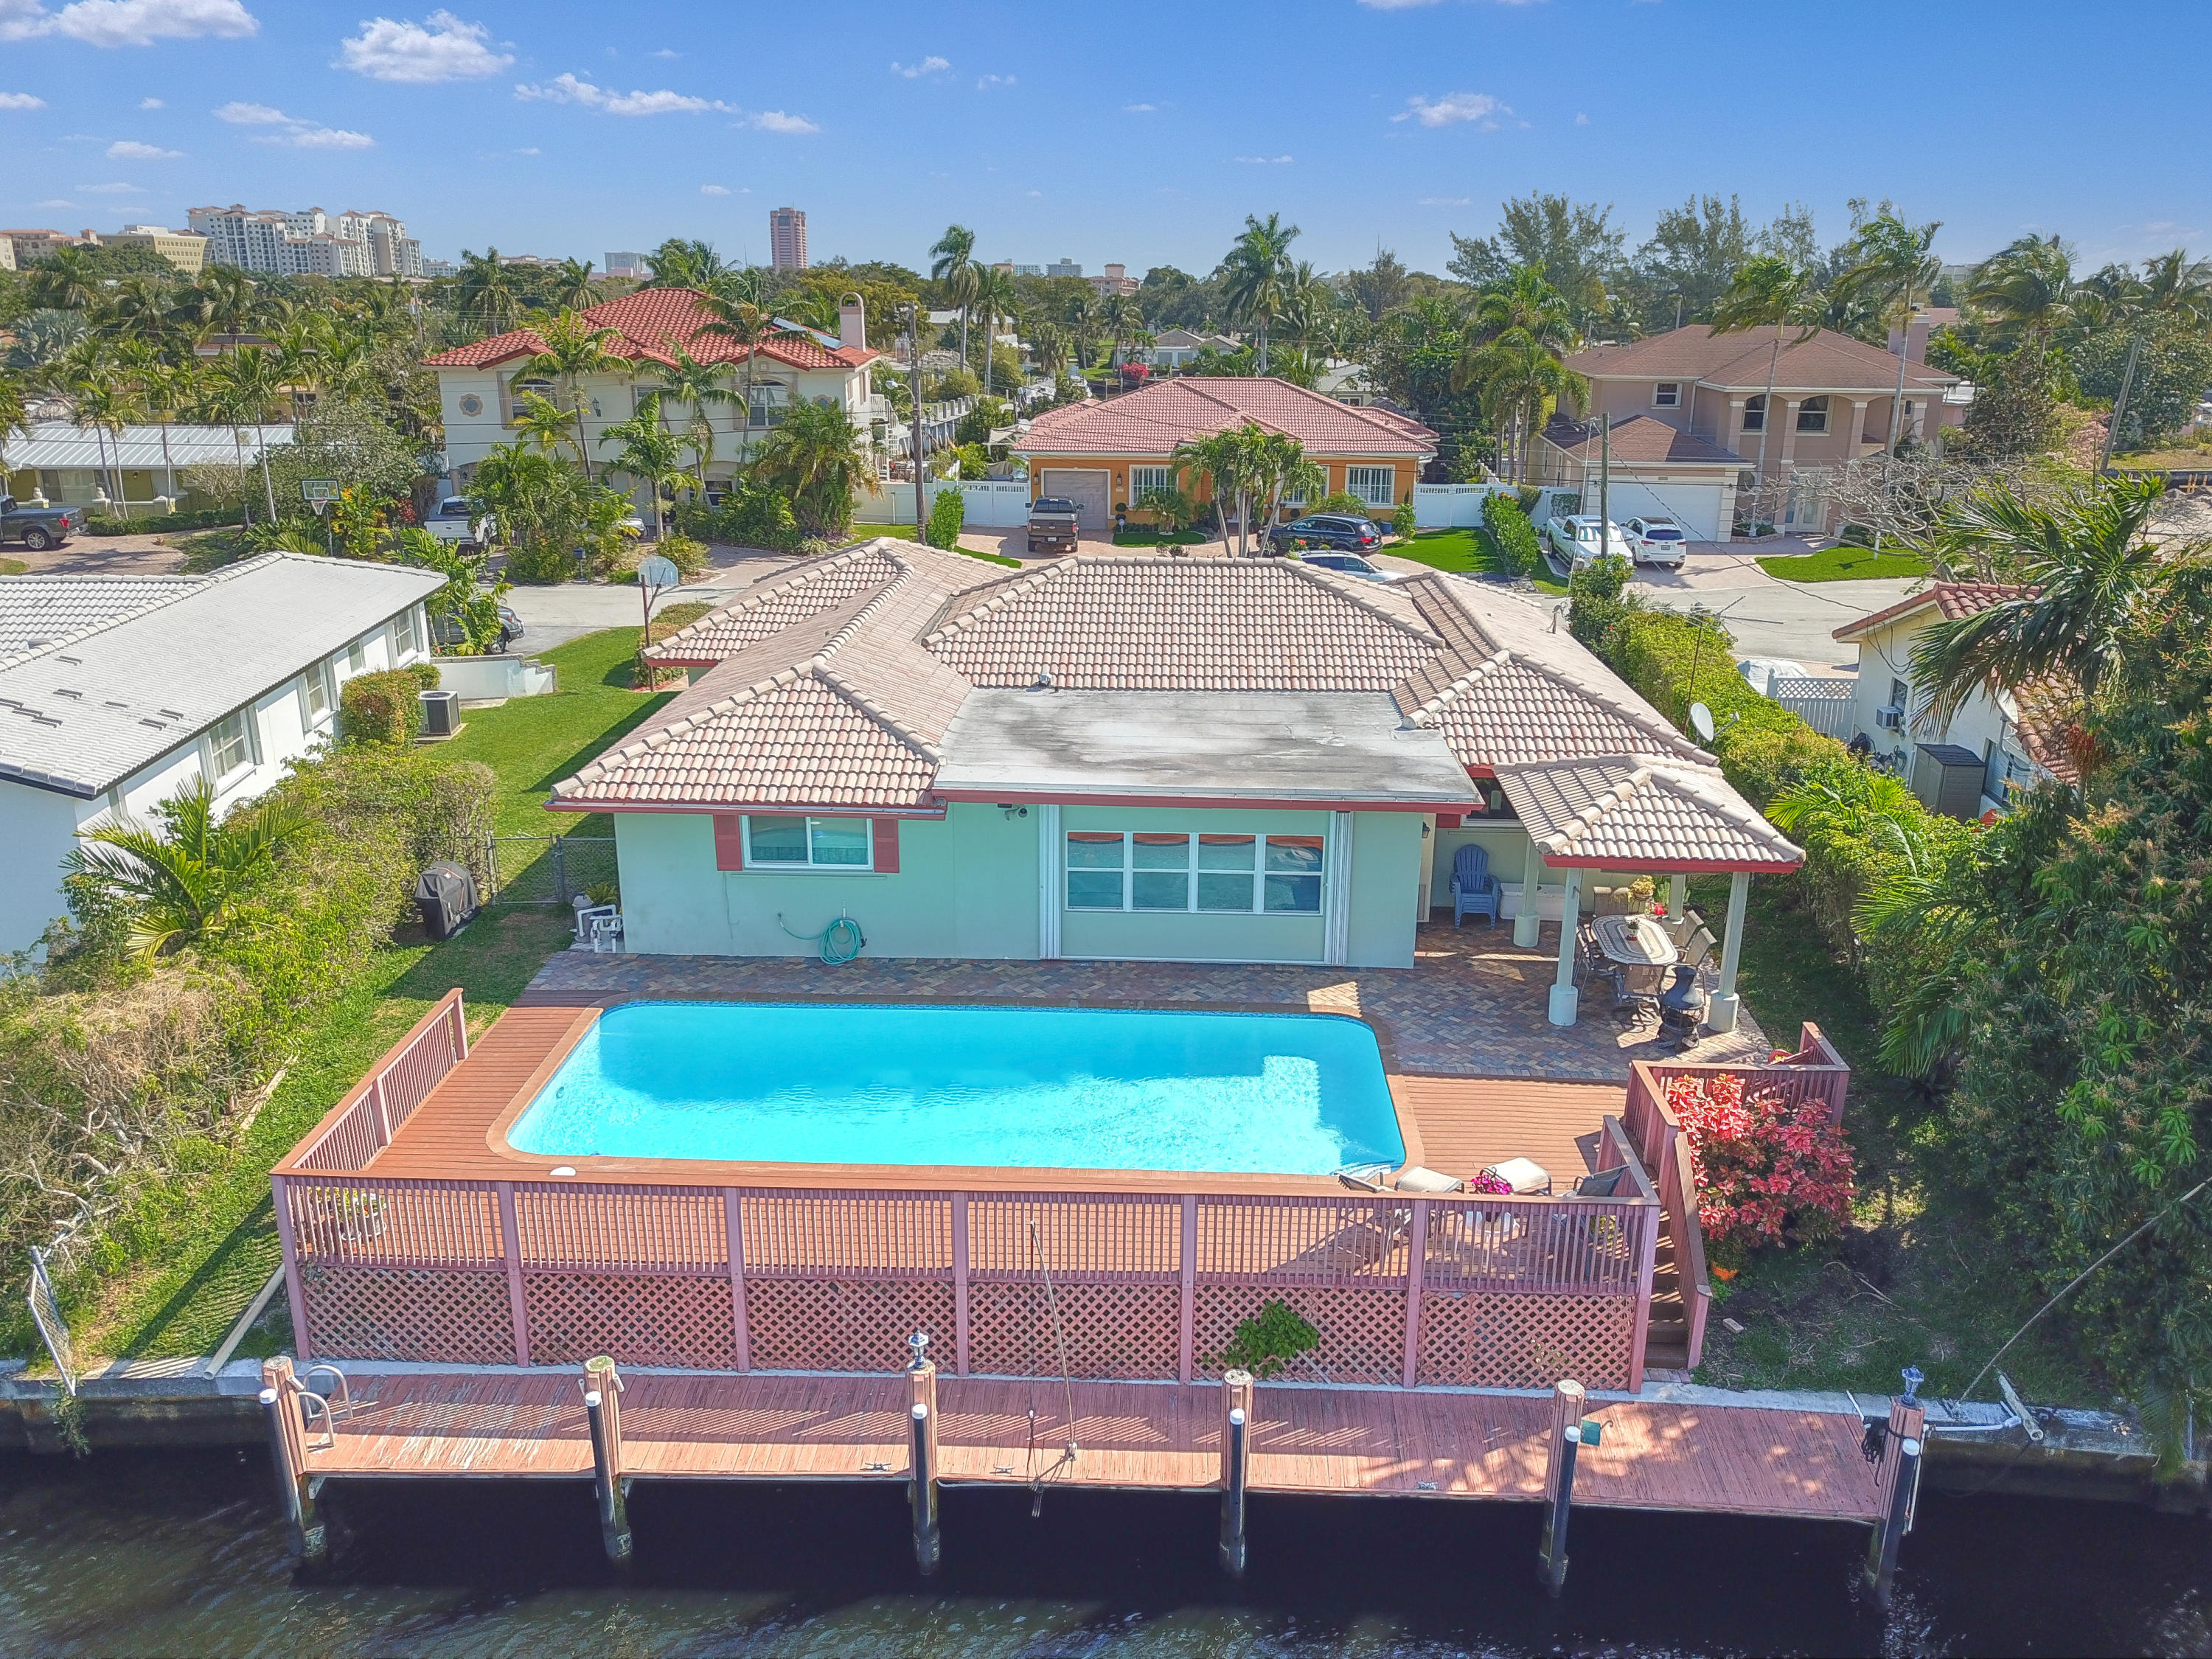 1441 4th Court, Boca Raton, Florida 33432, 4 Bedrooms Bedrooms, ,2 BathroomsBathrooms,Single Family,For Sale,4th,RX-10506682